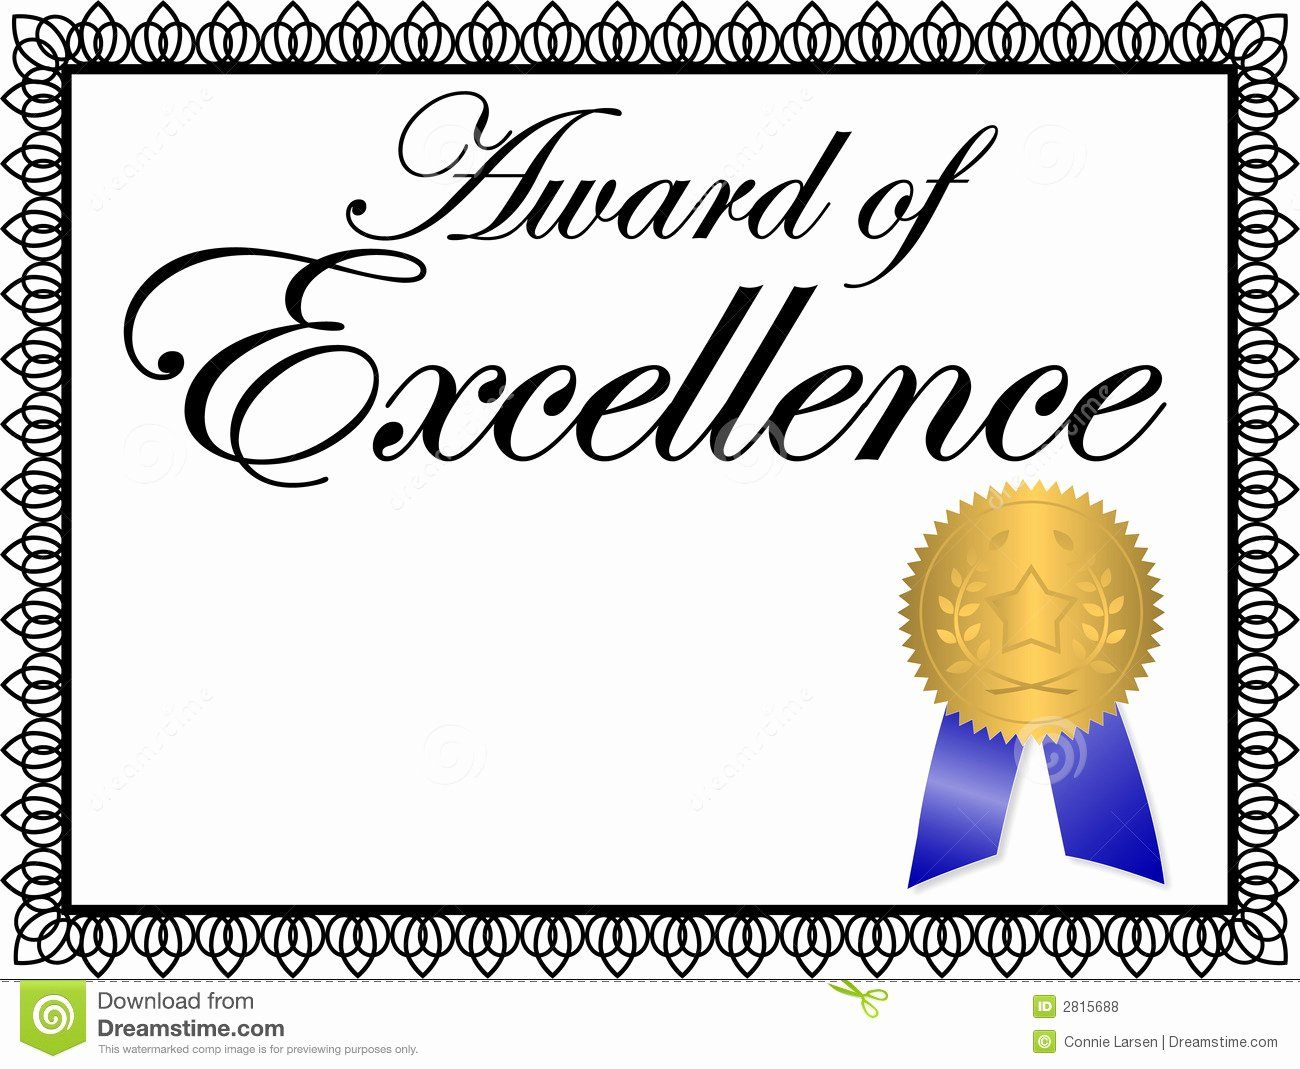 Award Certificate Clip Art Inspirational Award Certificate Clipart Png and Cliparts for Free